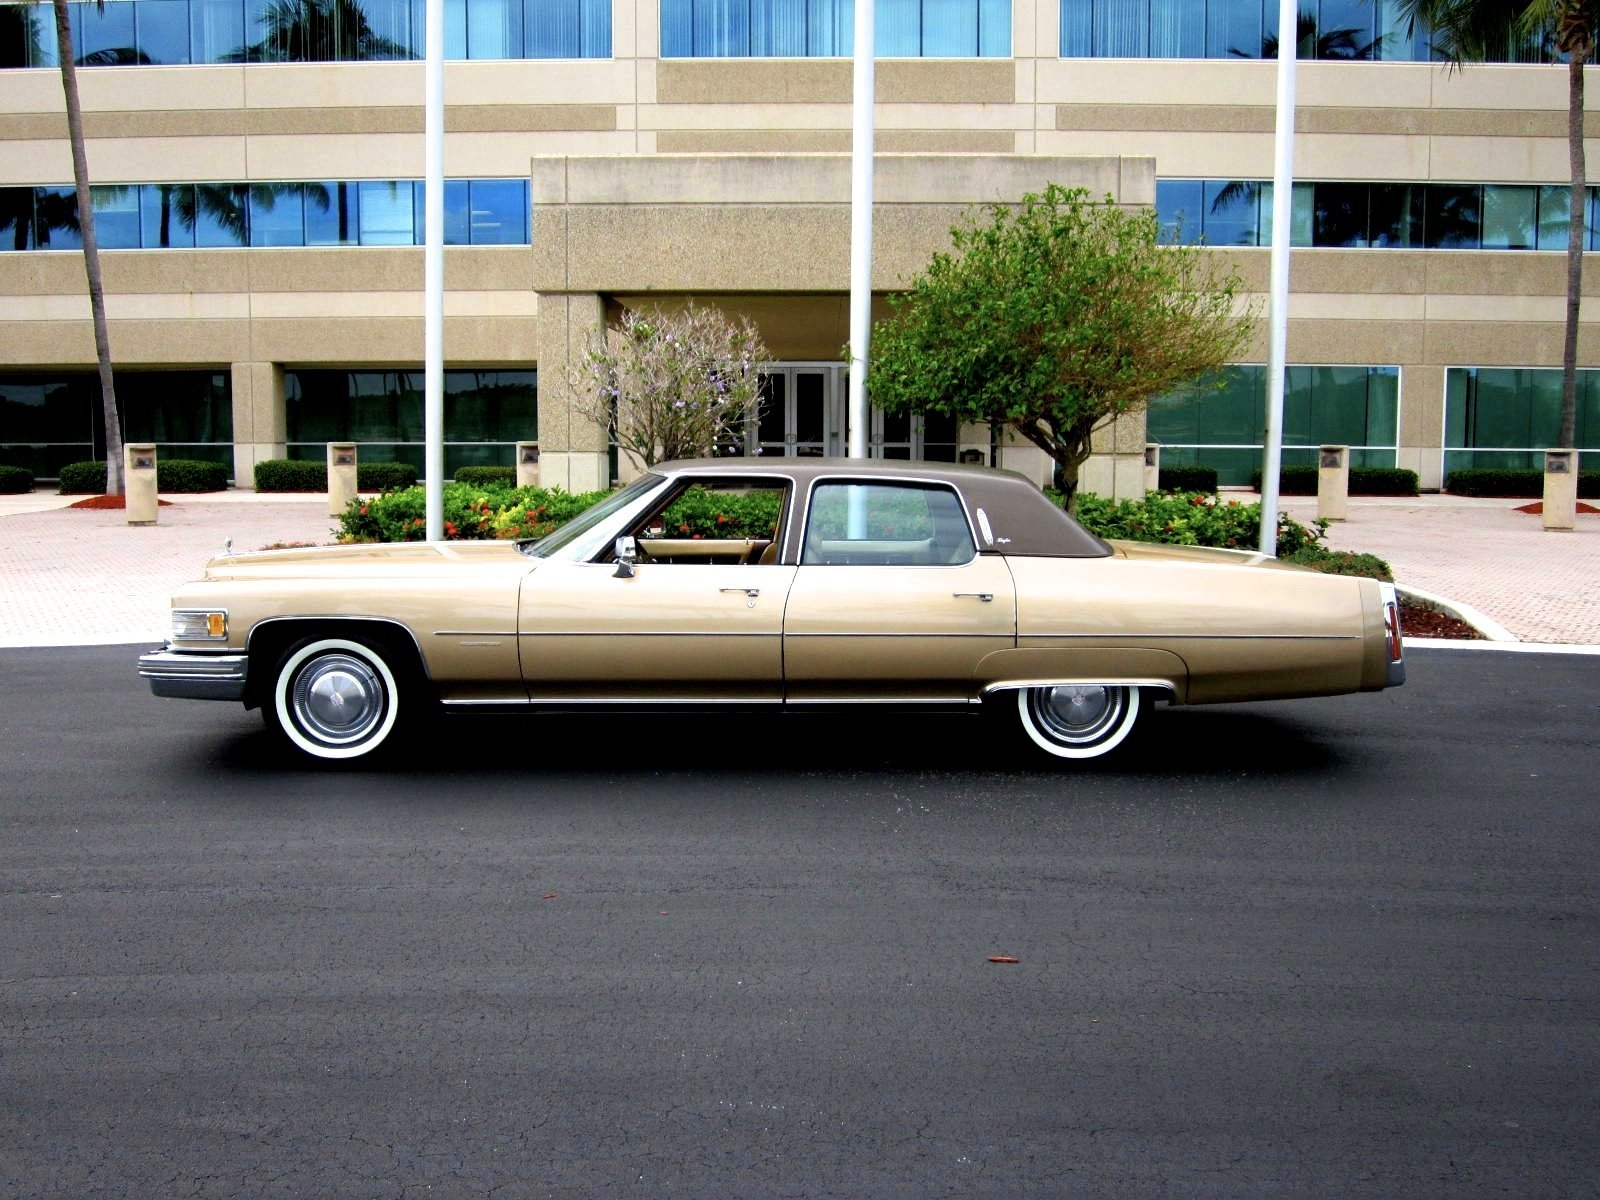 1976 Cadillac FLEETWOOD BROUGHAM for sale #94891 | MCG